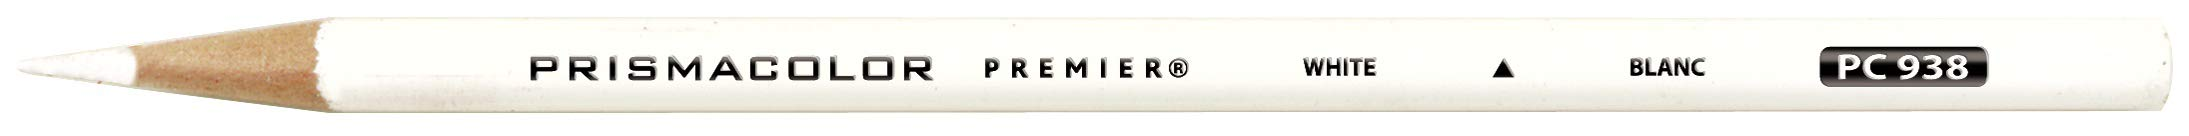 Prismacolor 3365 Premier Soft Core Colored Pencil, White Pack of 12